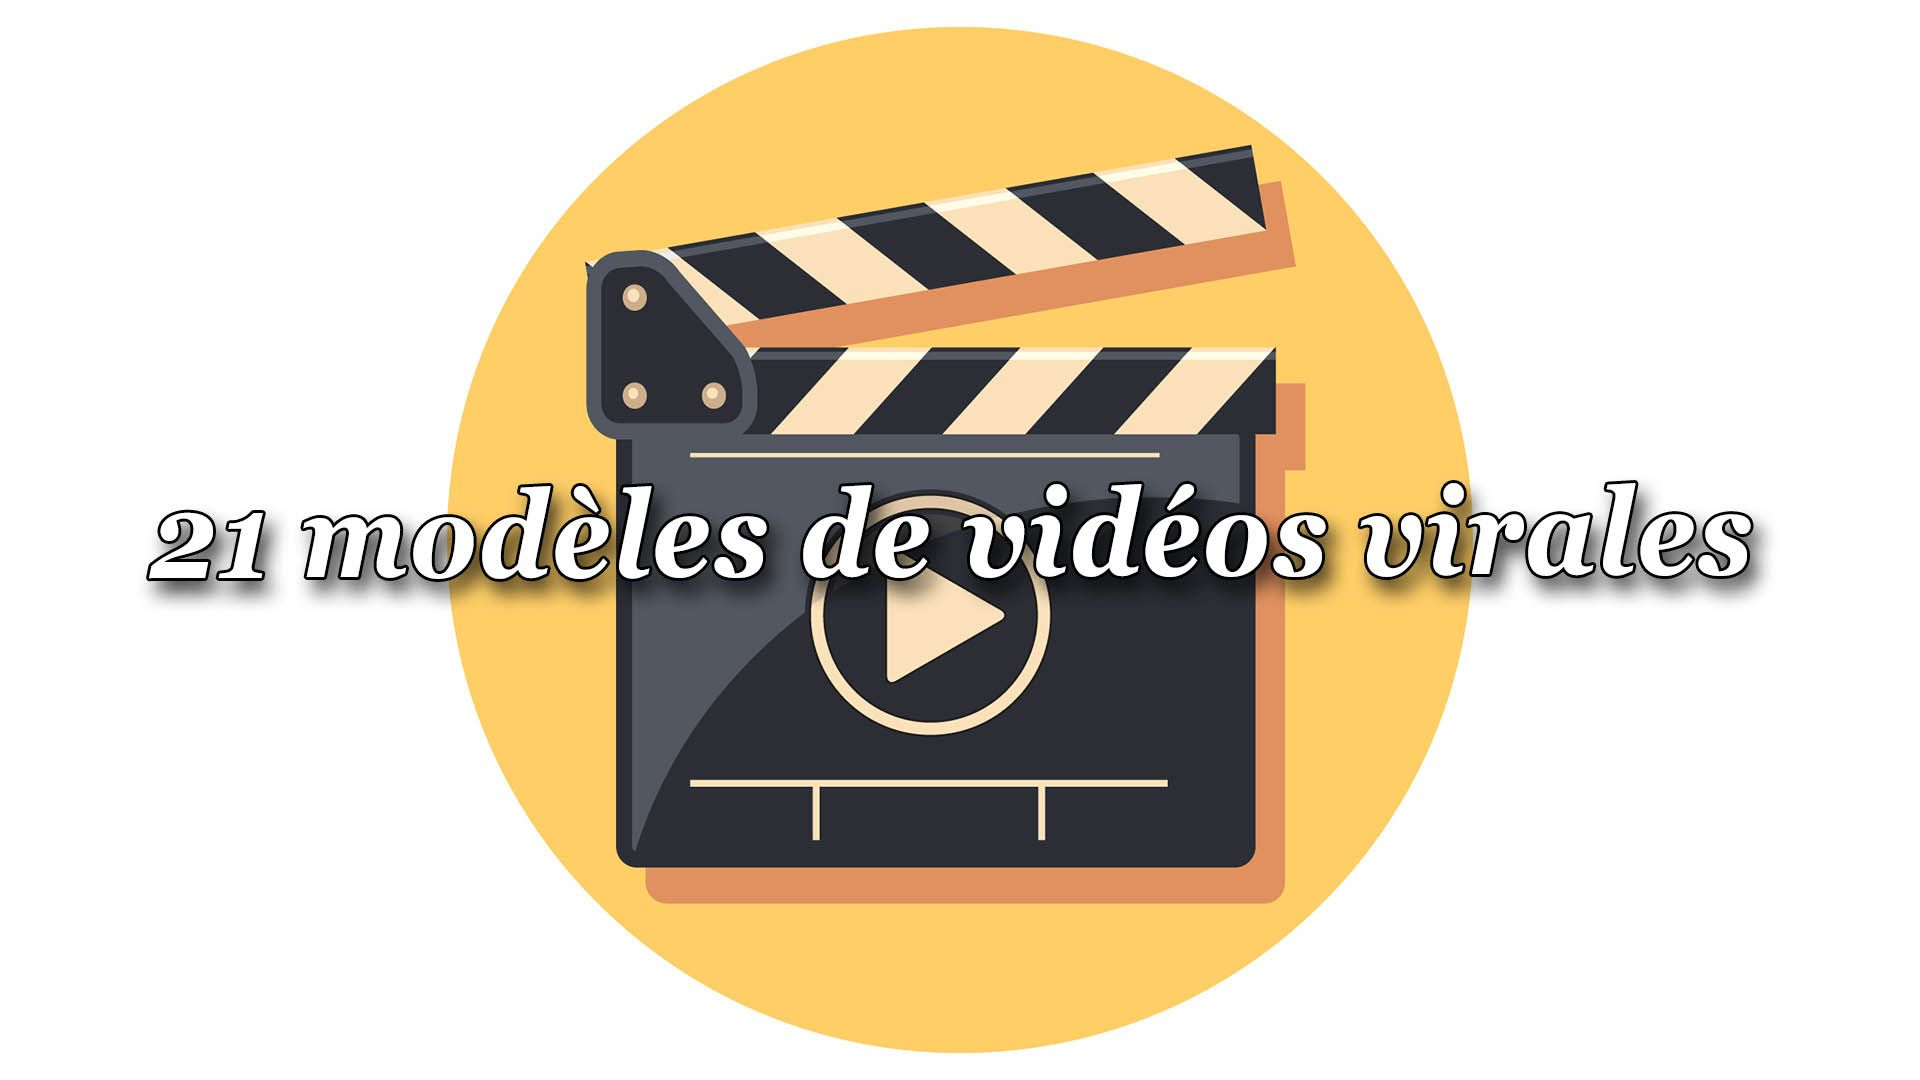 21 modèles de vidéos virales #GrowthHacking #WEbMarketing #FormationGrowthHacking #CentreDeFormationFrance #TunnelAARRR #AARRR #SocialMedia #CommunityManagement #SEO